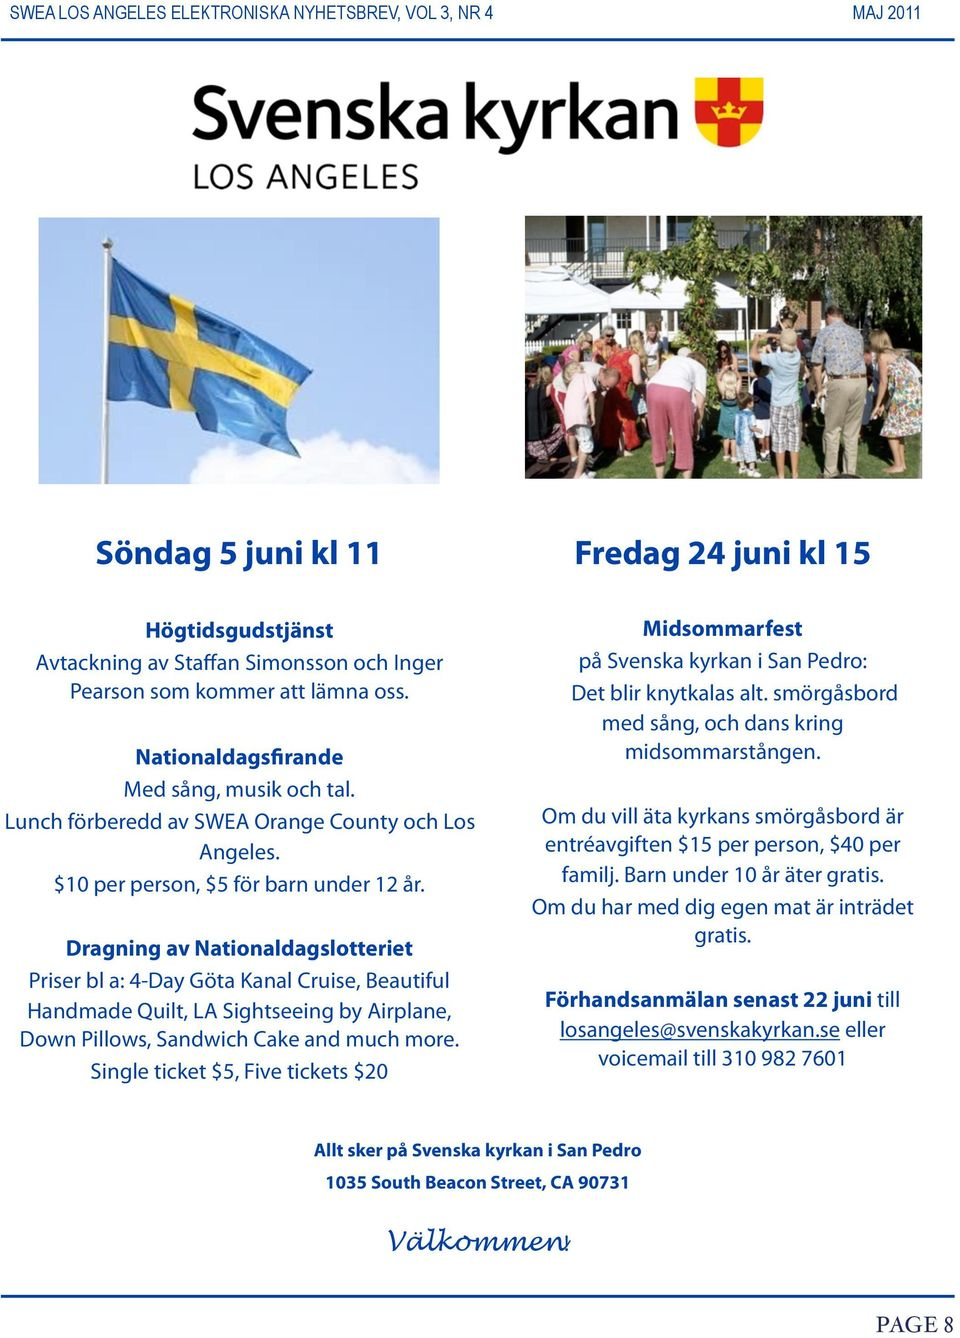 Dragning av Nationaldagslotteriet Priser bl a: 4-Day Göta Kanal Cruise, Beautiful Handmade Quilt, LA Sightseeing by Airplane, Down Pillows, Sandwich Cake and much more.